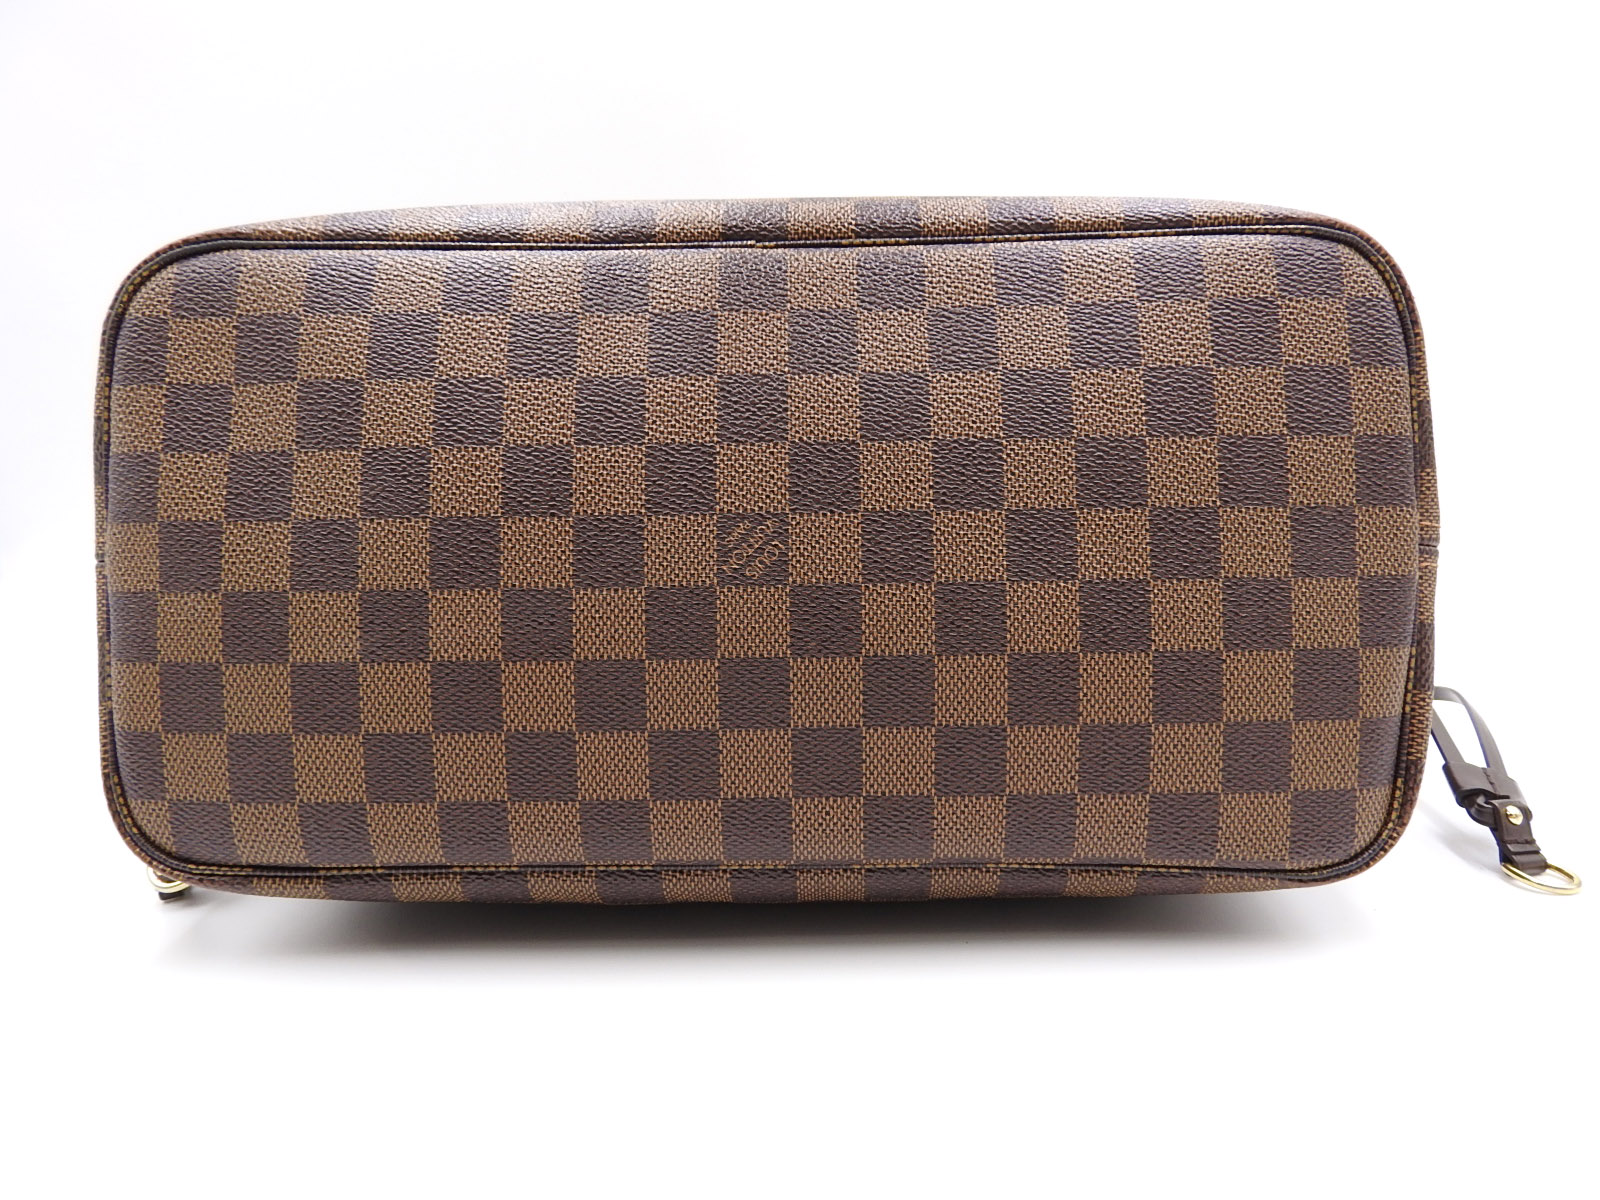 22b383ecb LOUIS VUITTON Neverfull MM Damier Ebene Shoulder Tote Bag With Pouch ...